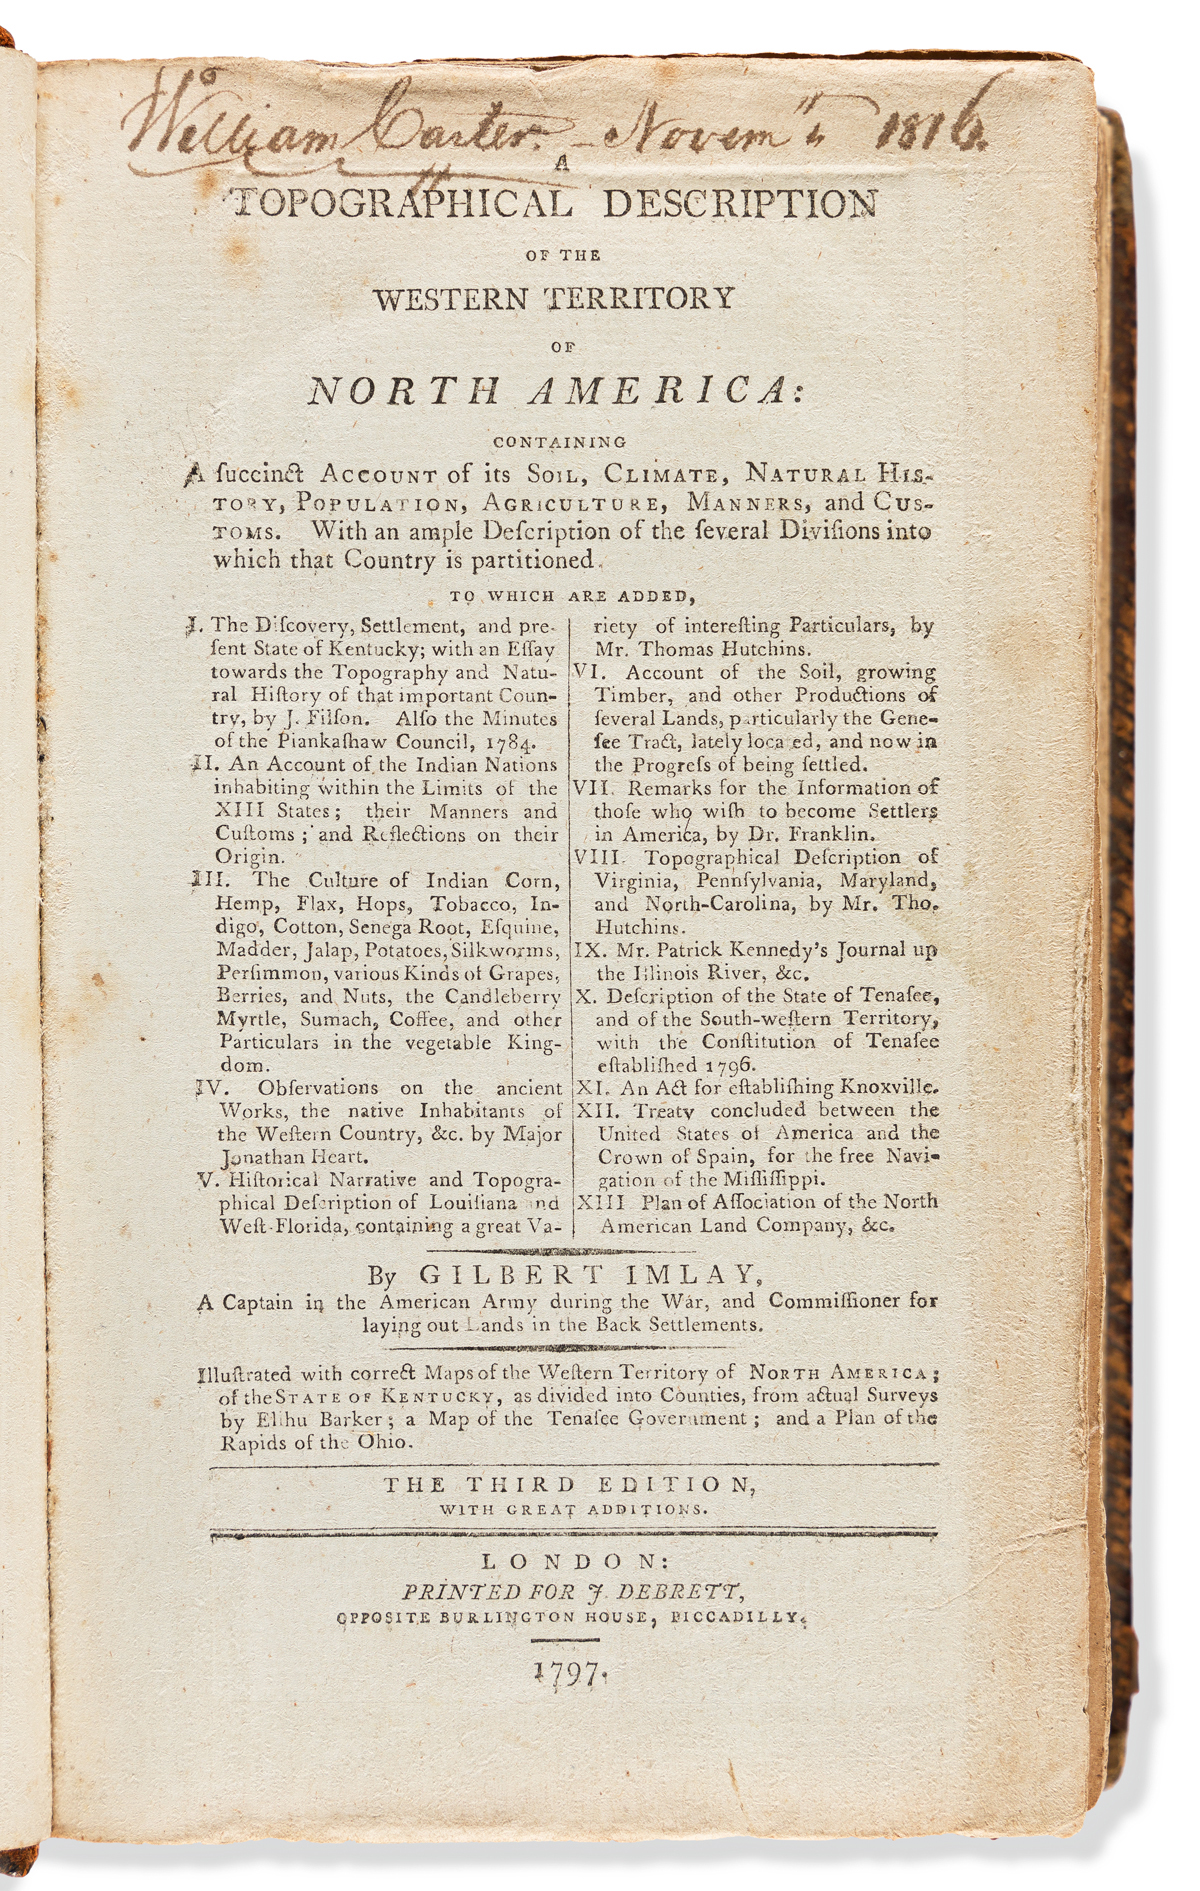 Imlay, Gilbert (1754-1828) A Topographical Description of the Western Territory of North America.